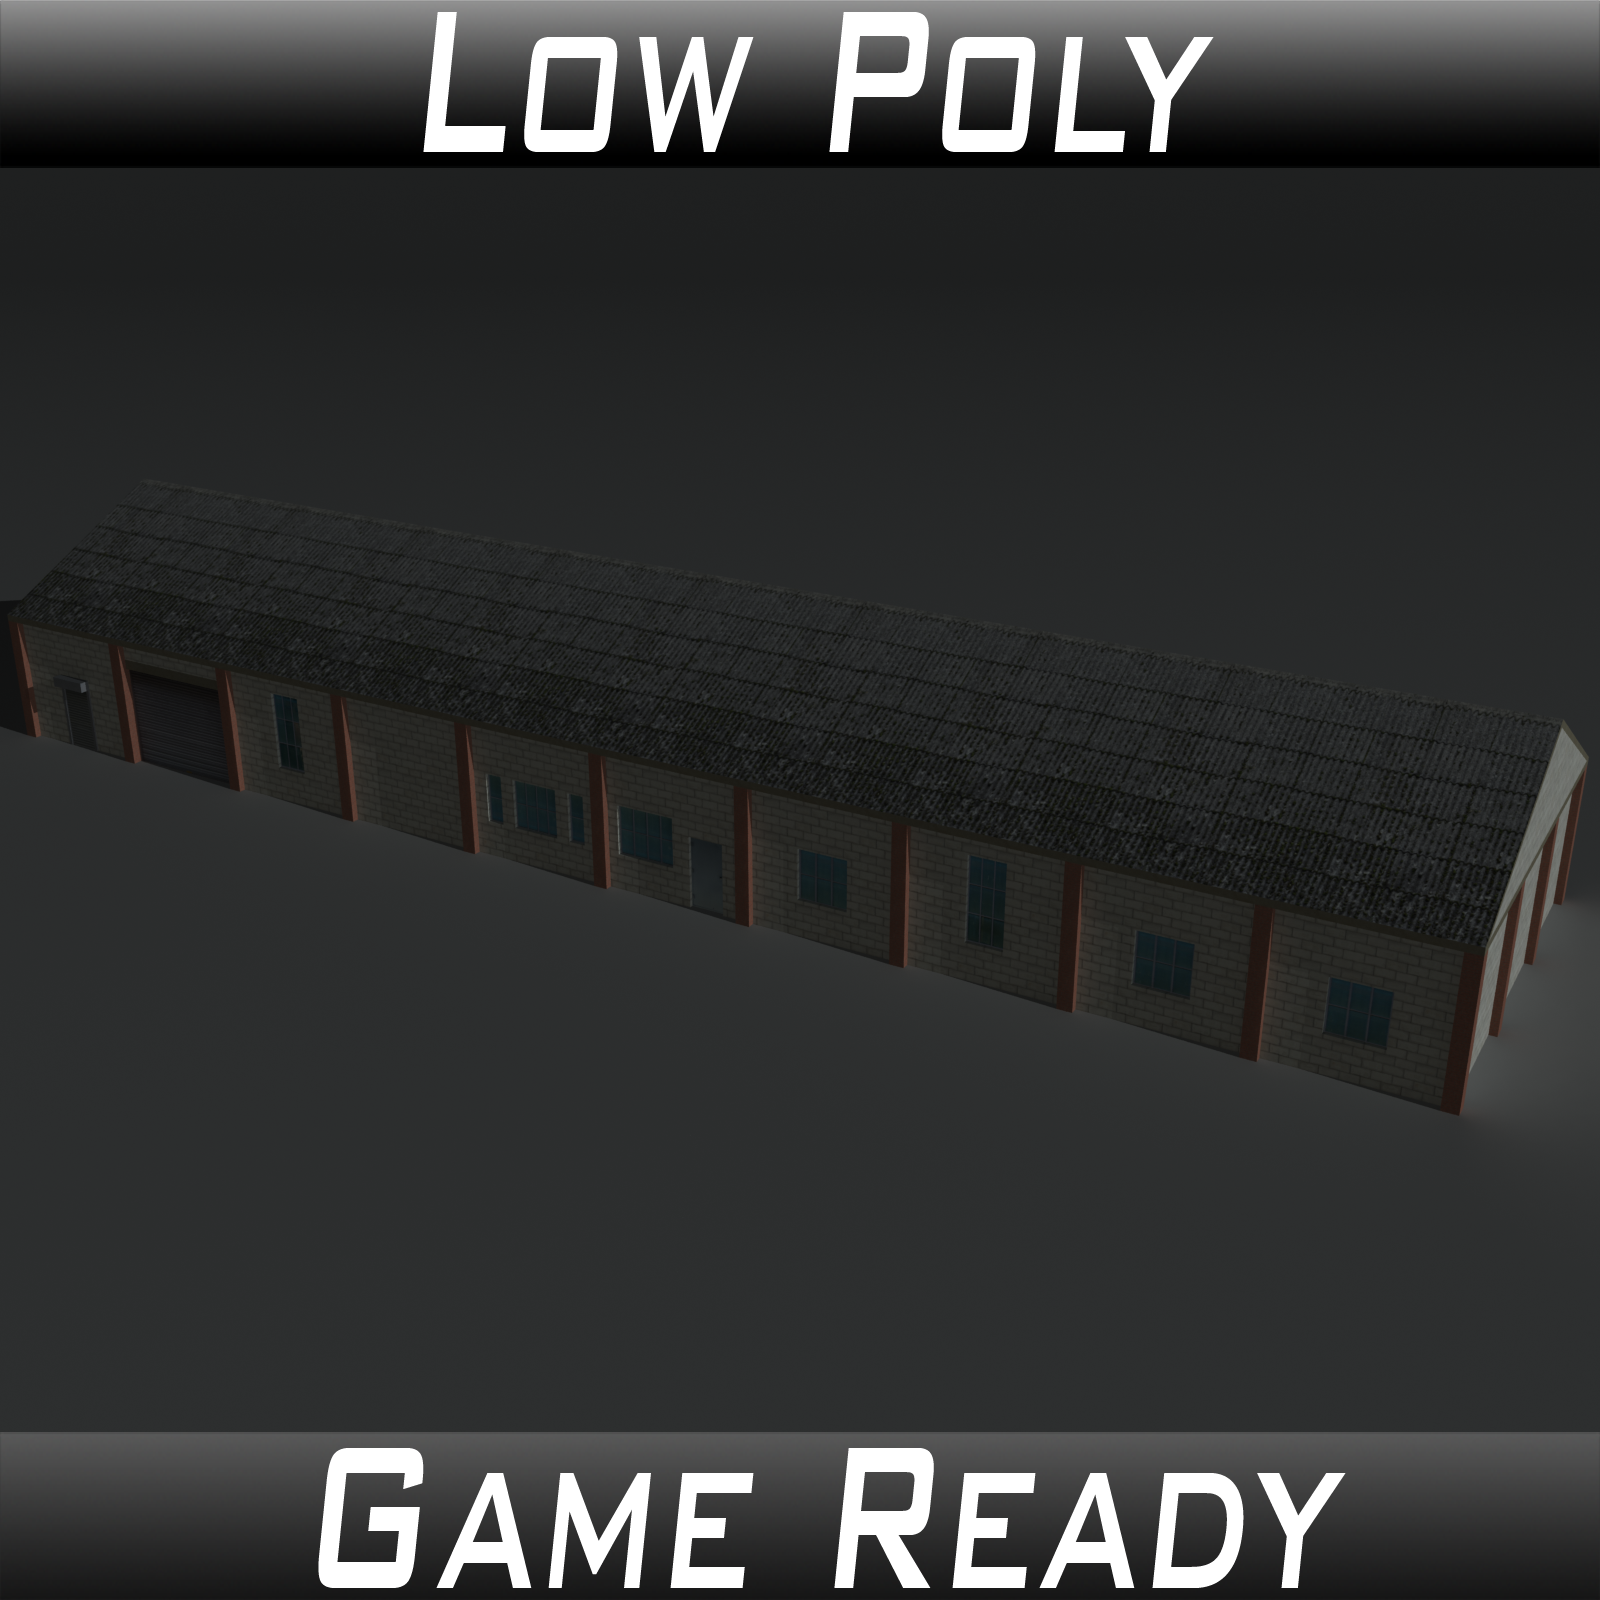 Low Poly Factory Building 29 - Extended Licence